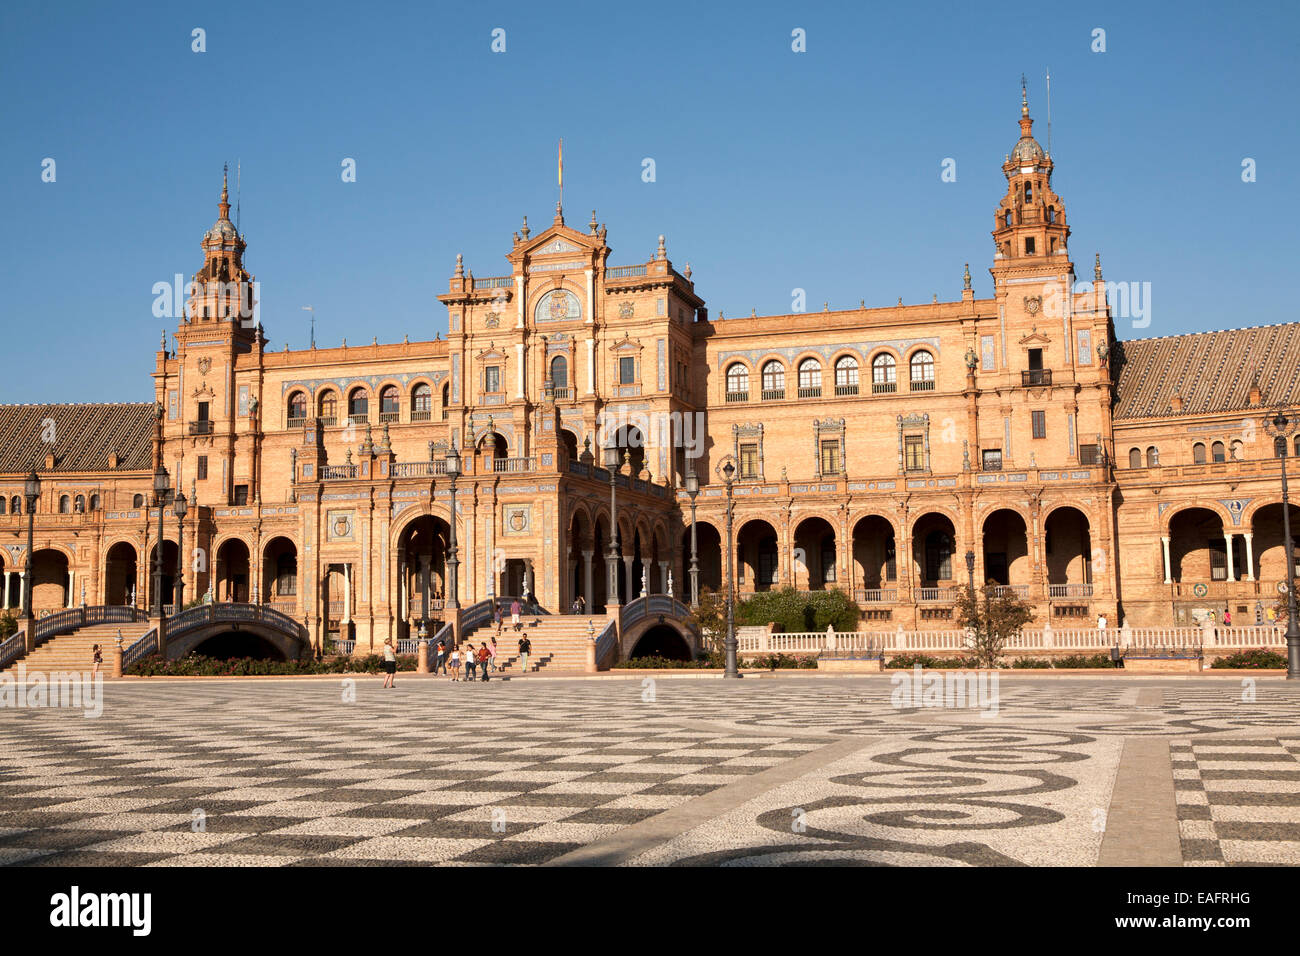 The Plaza de España, Seville, Spain built for the Ibero-American Exposition of 1929. It is a landmark example - Stock Image